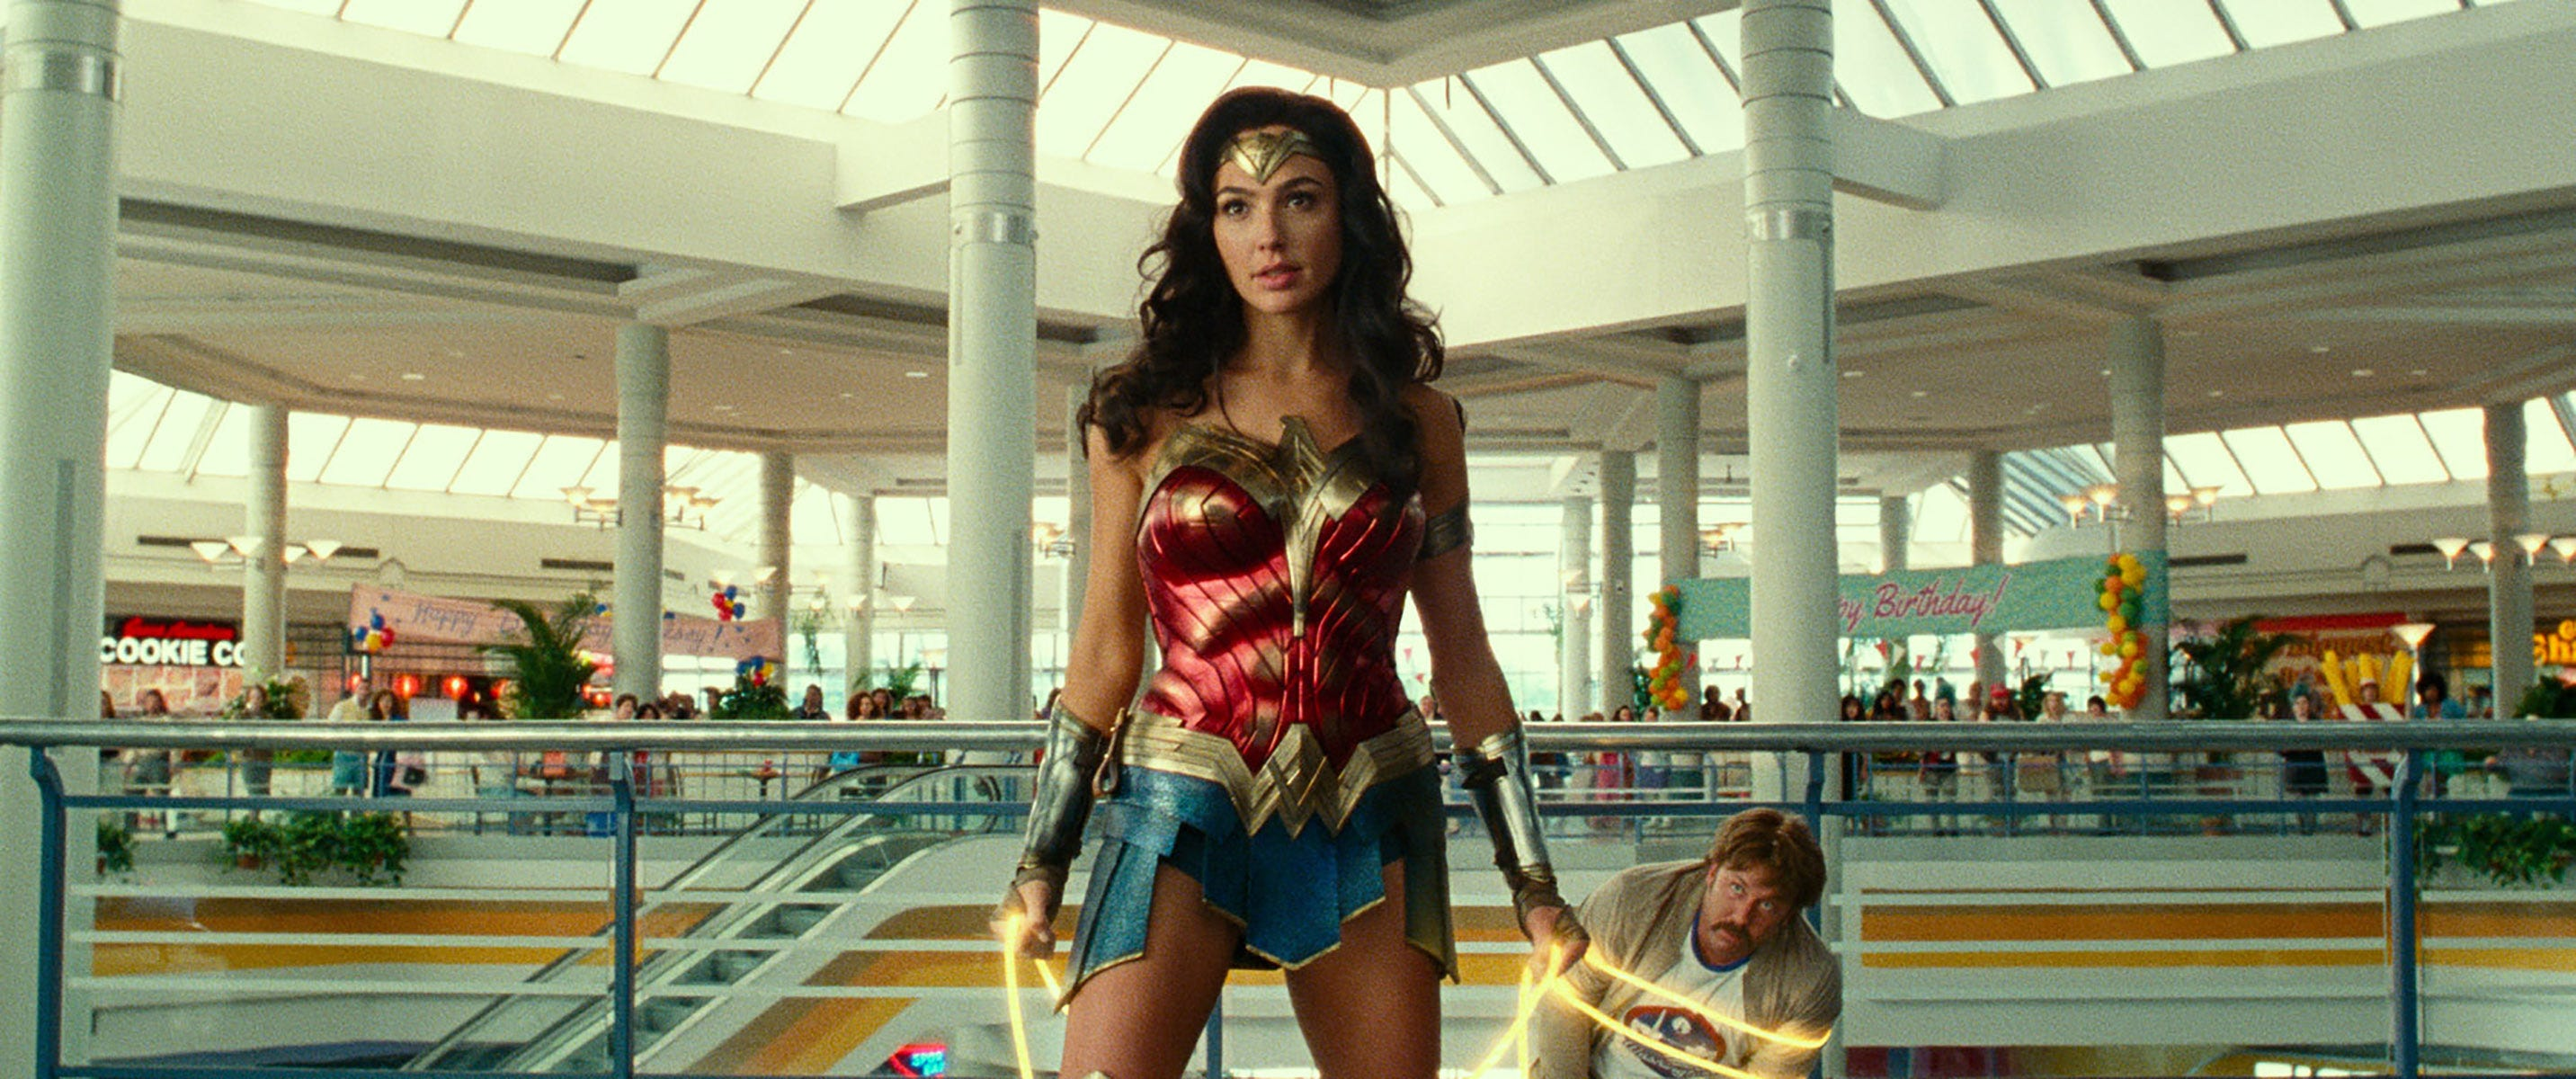 Wonder Woman 1984': Gal Gadot rules the mall in superhero sequel